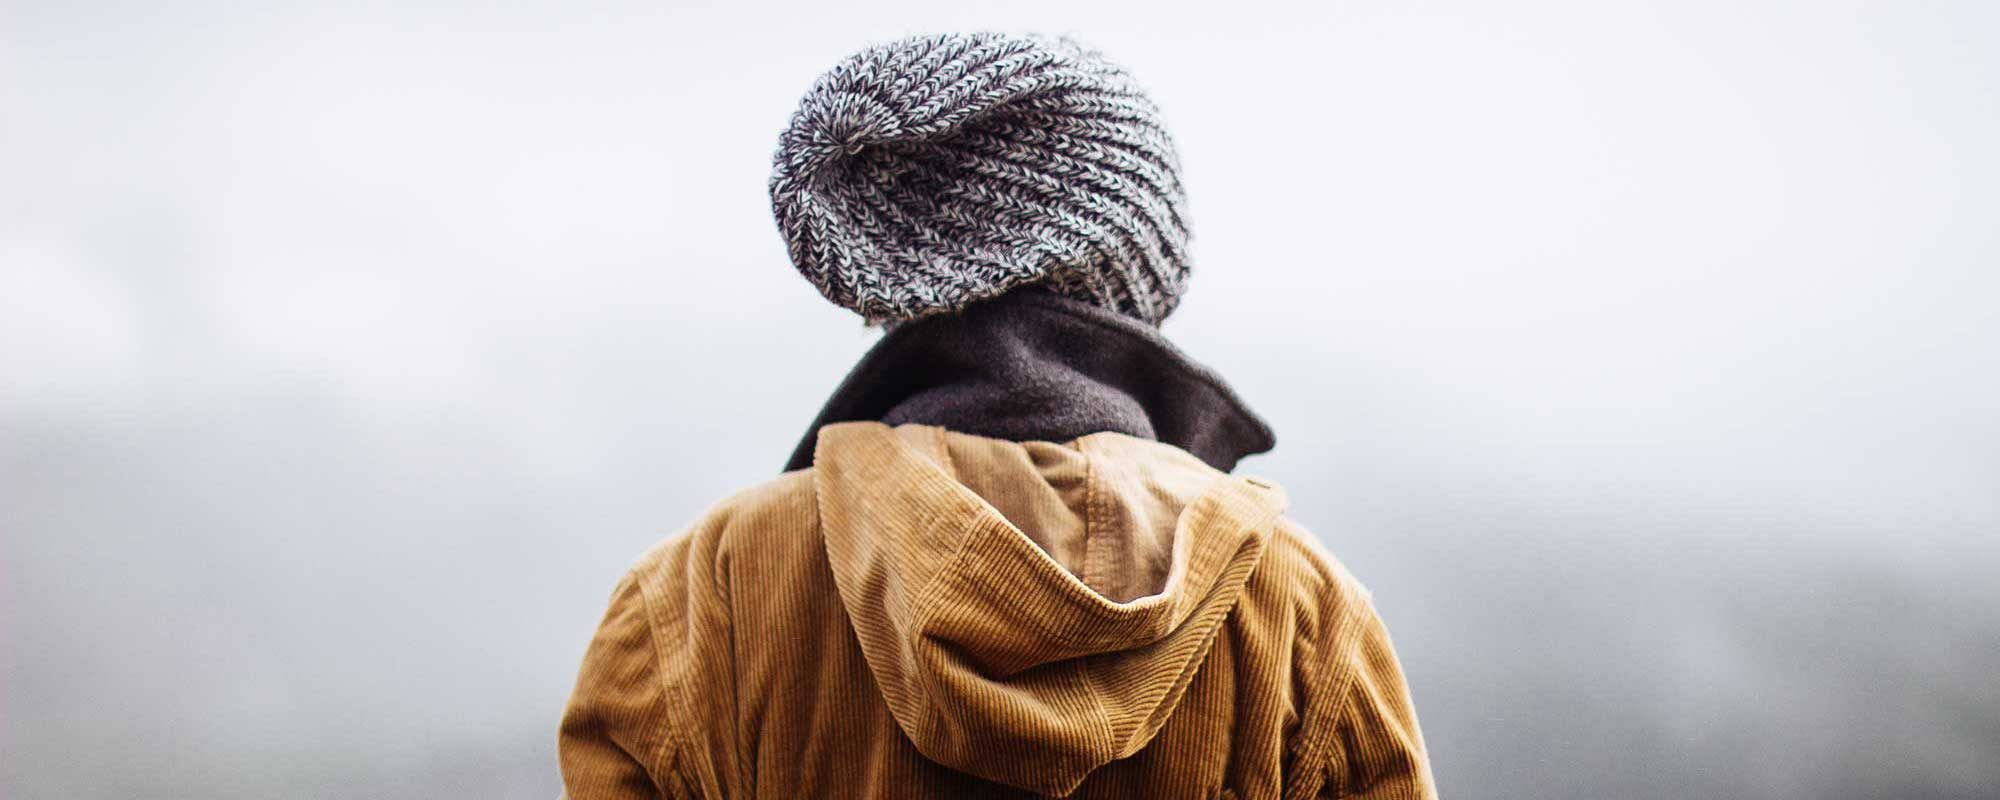 knit-hat-cordury-home